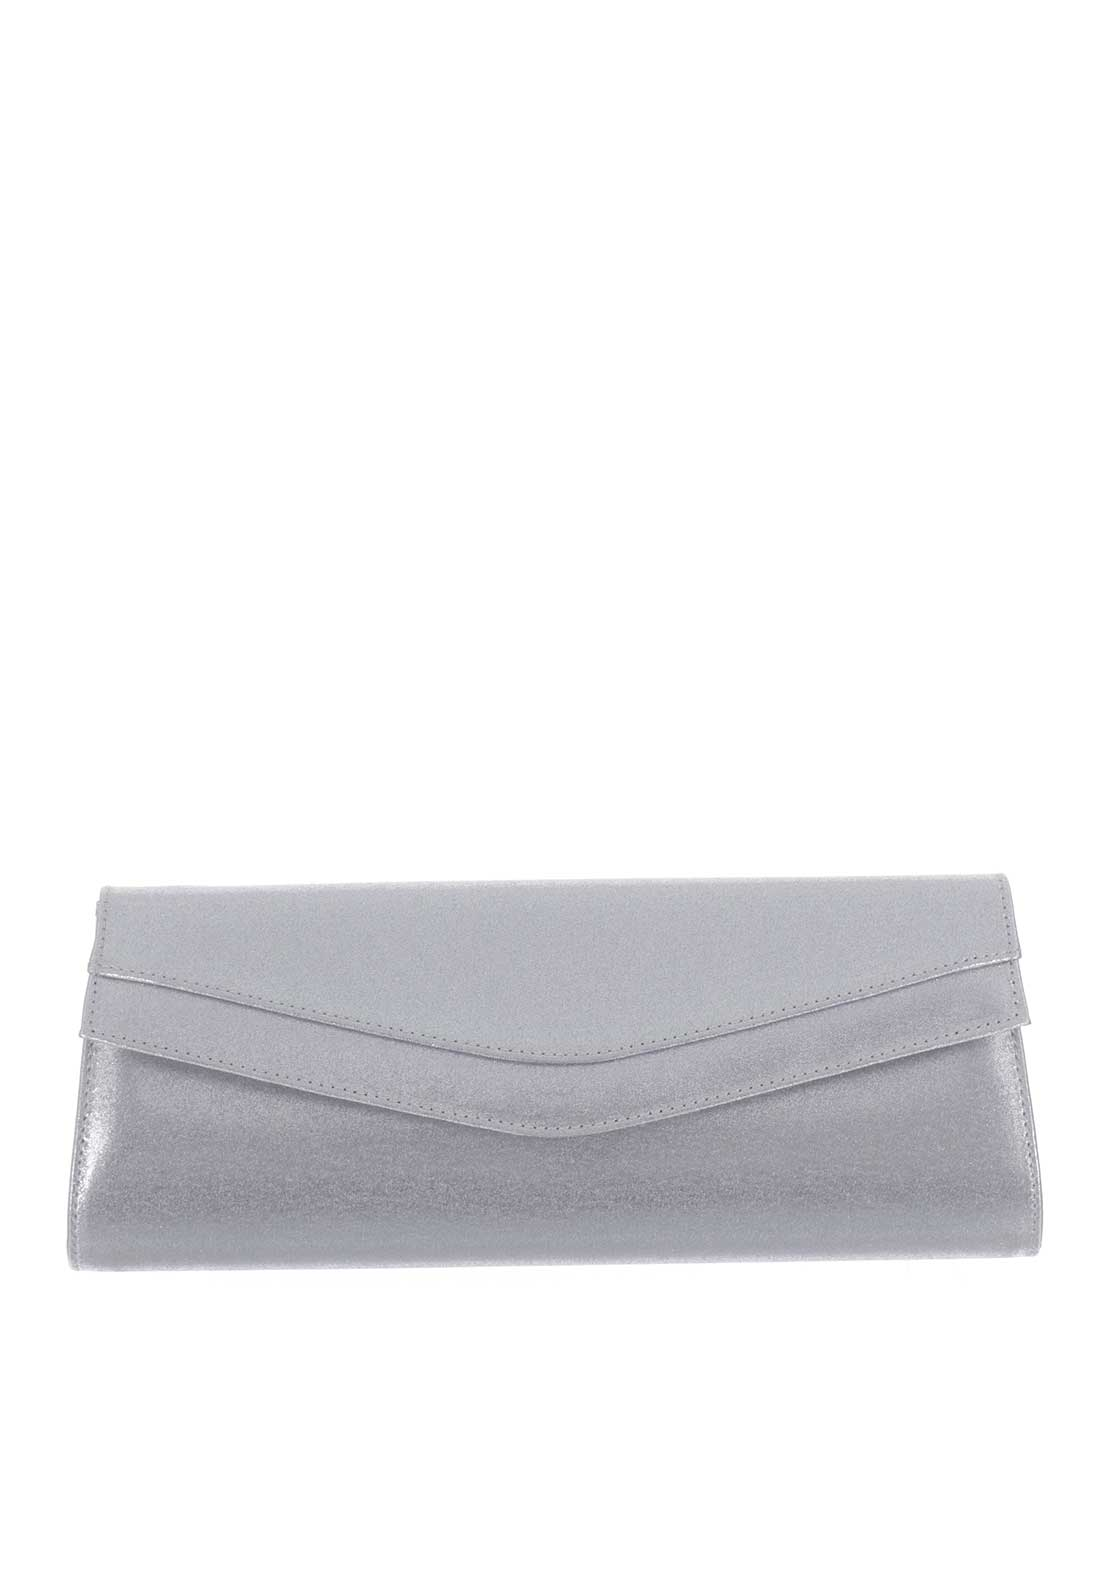 Ana Roman Satin Clutch Bag, Silver